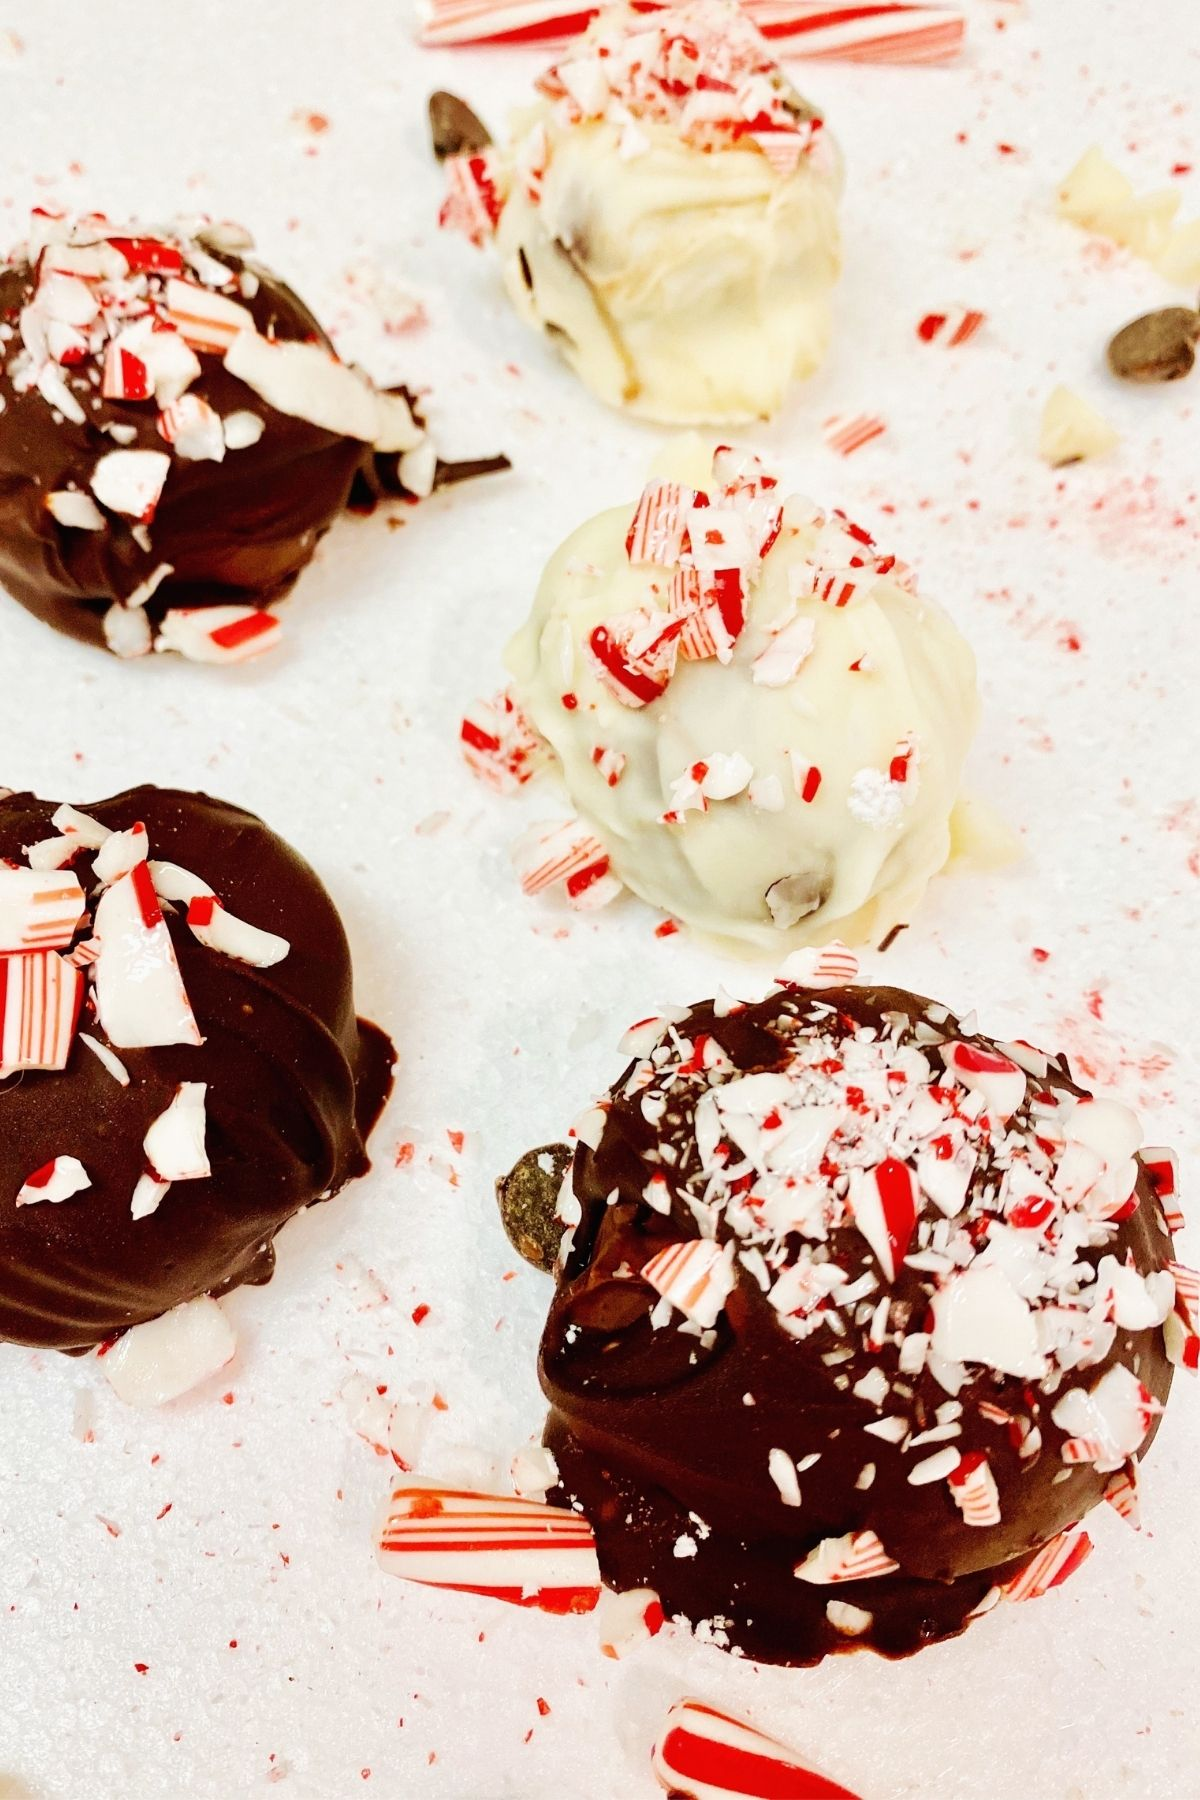 Chocolate Peppermint Vegan Truffles coated with candy canes on a white background.